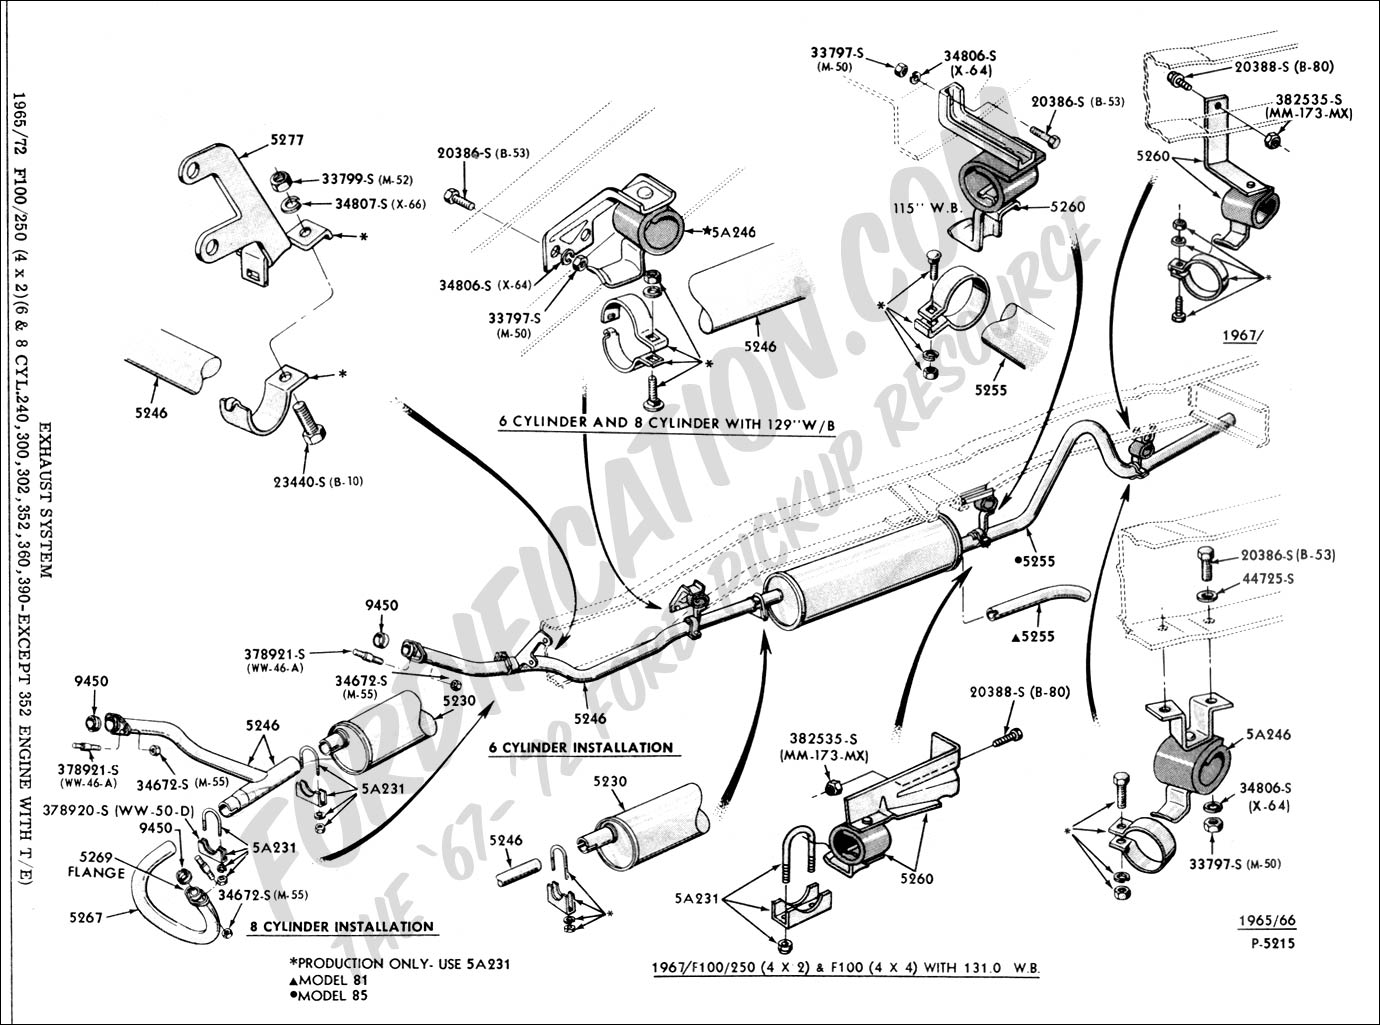 2002 F150 Engine Diagram Schema Wiring Online 1992 Mustang Fuel Pump 01 Experience Of U2022 2001 Ford F 150 4 2